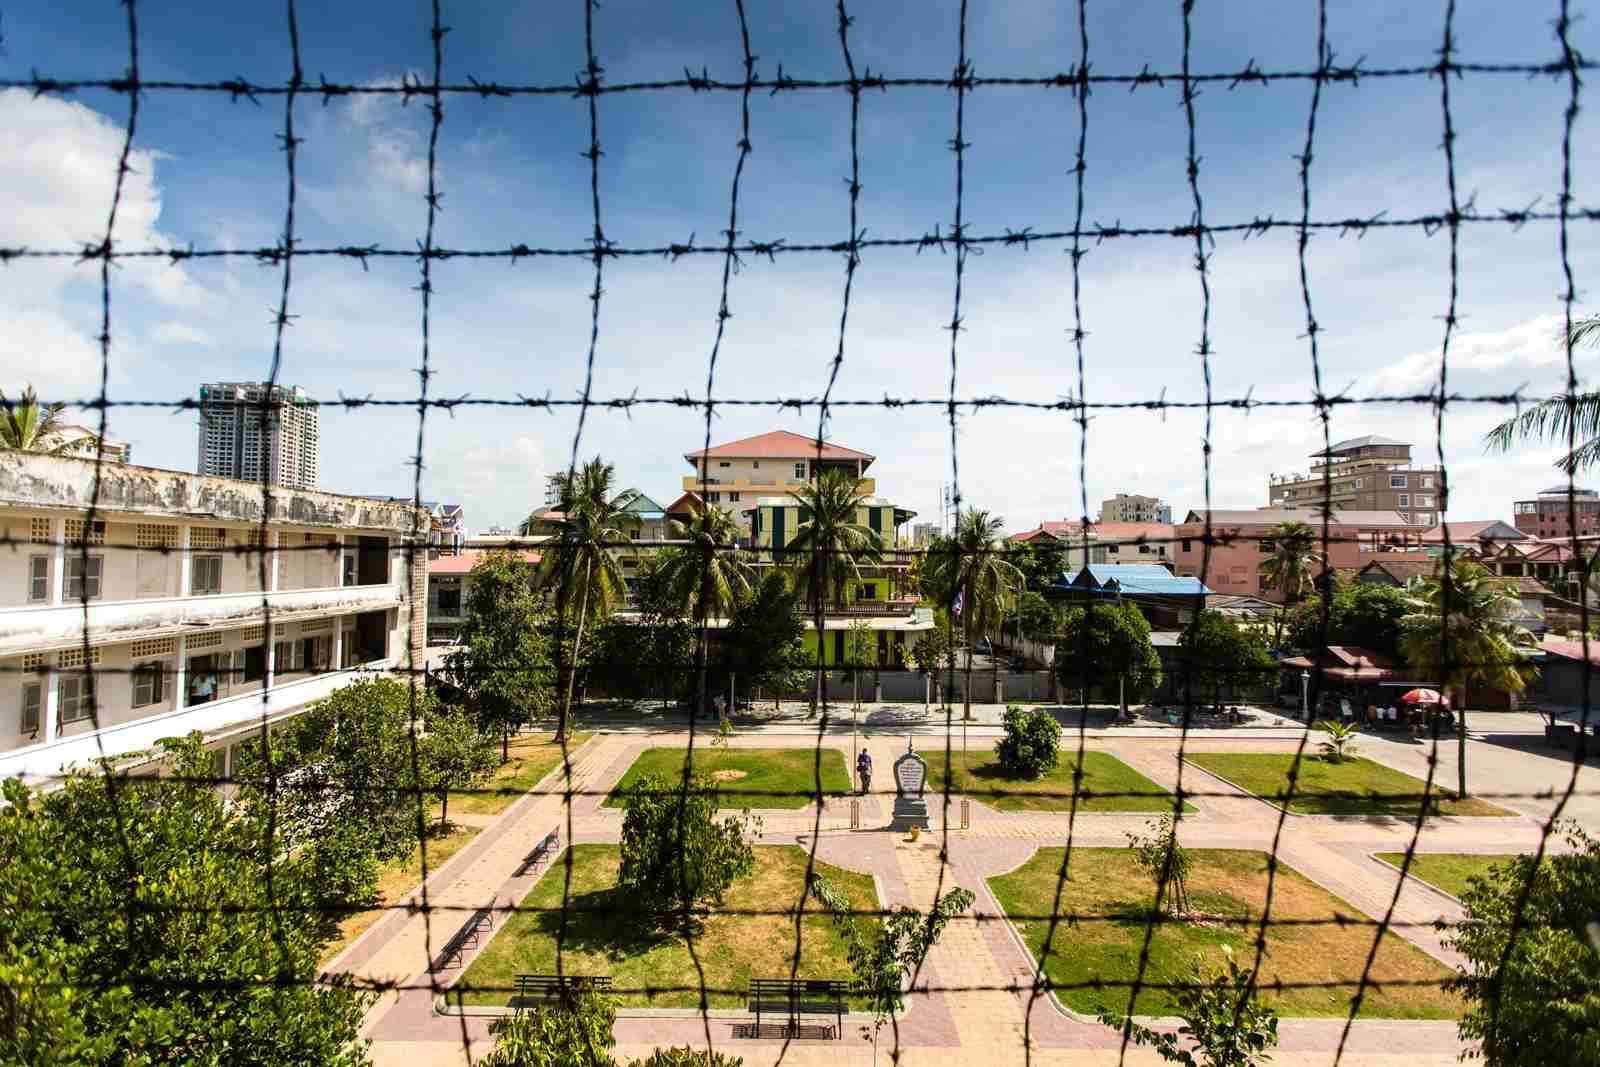 The Tuol Sleng Genocide Museum at the Toul Sleng Prison. (Photo by Manuel ROMARIS/Getty Images)